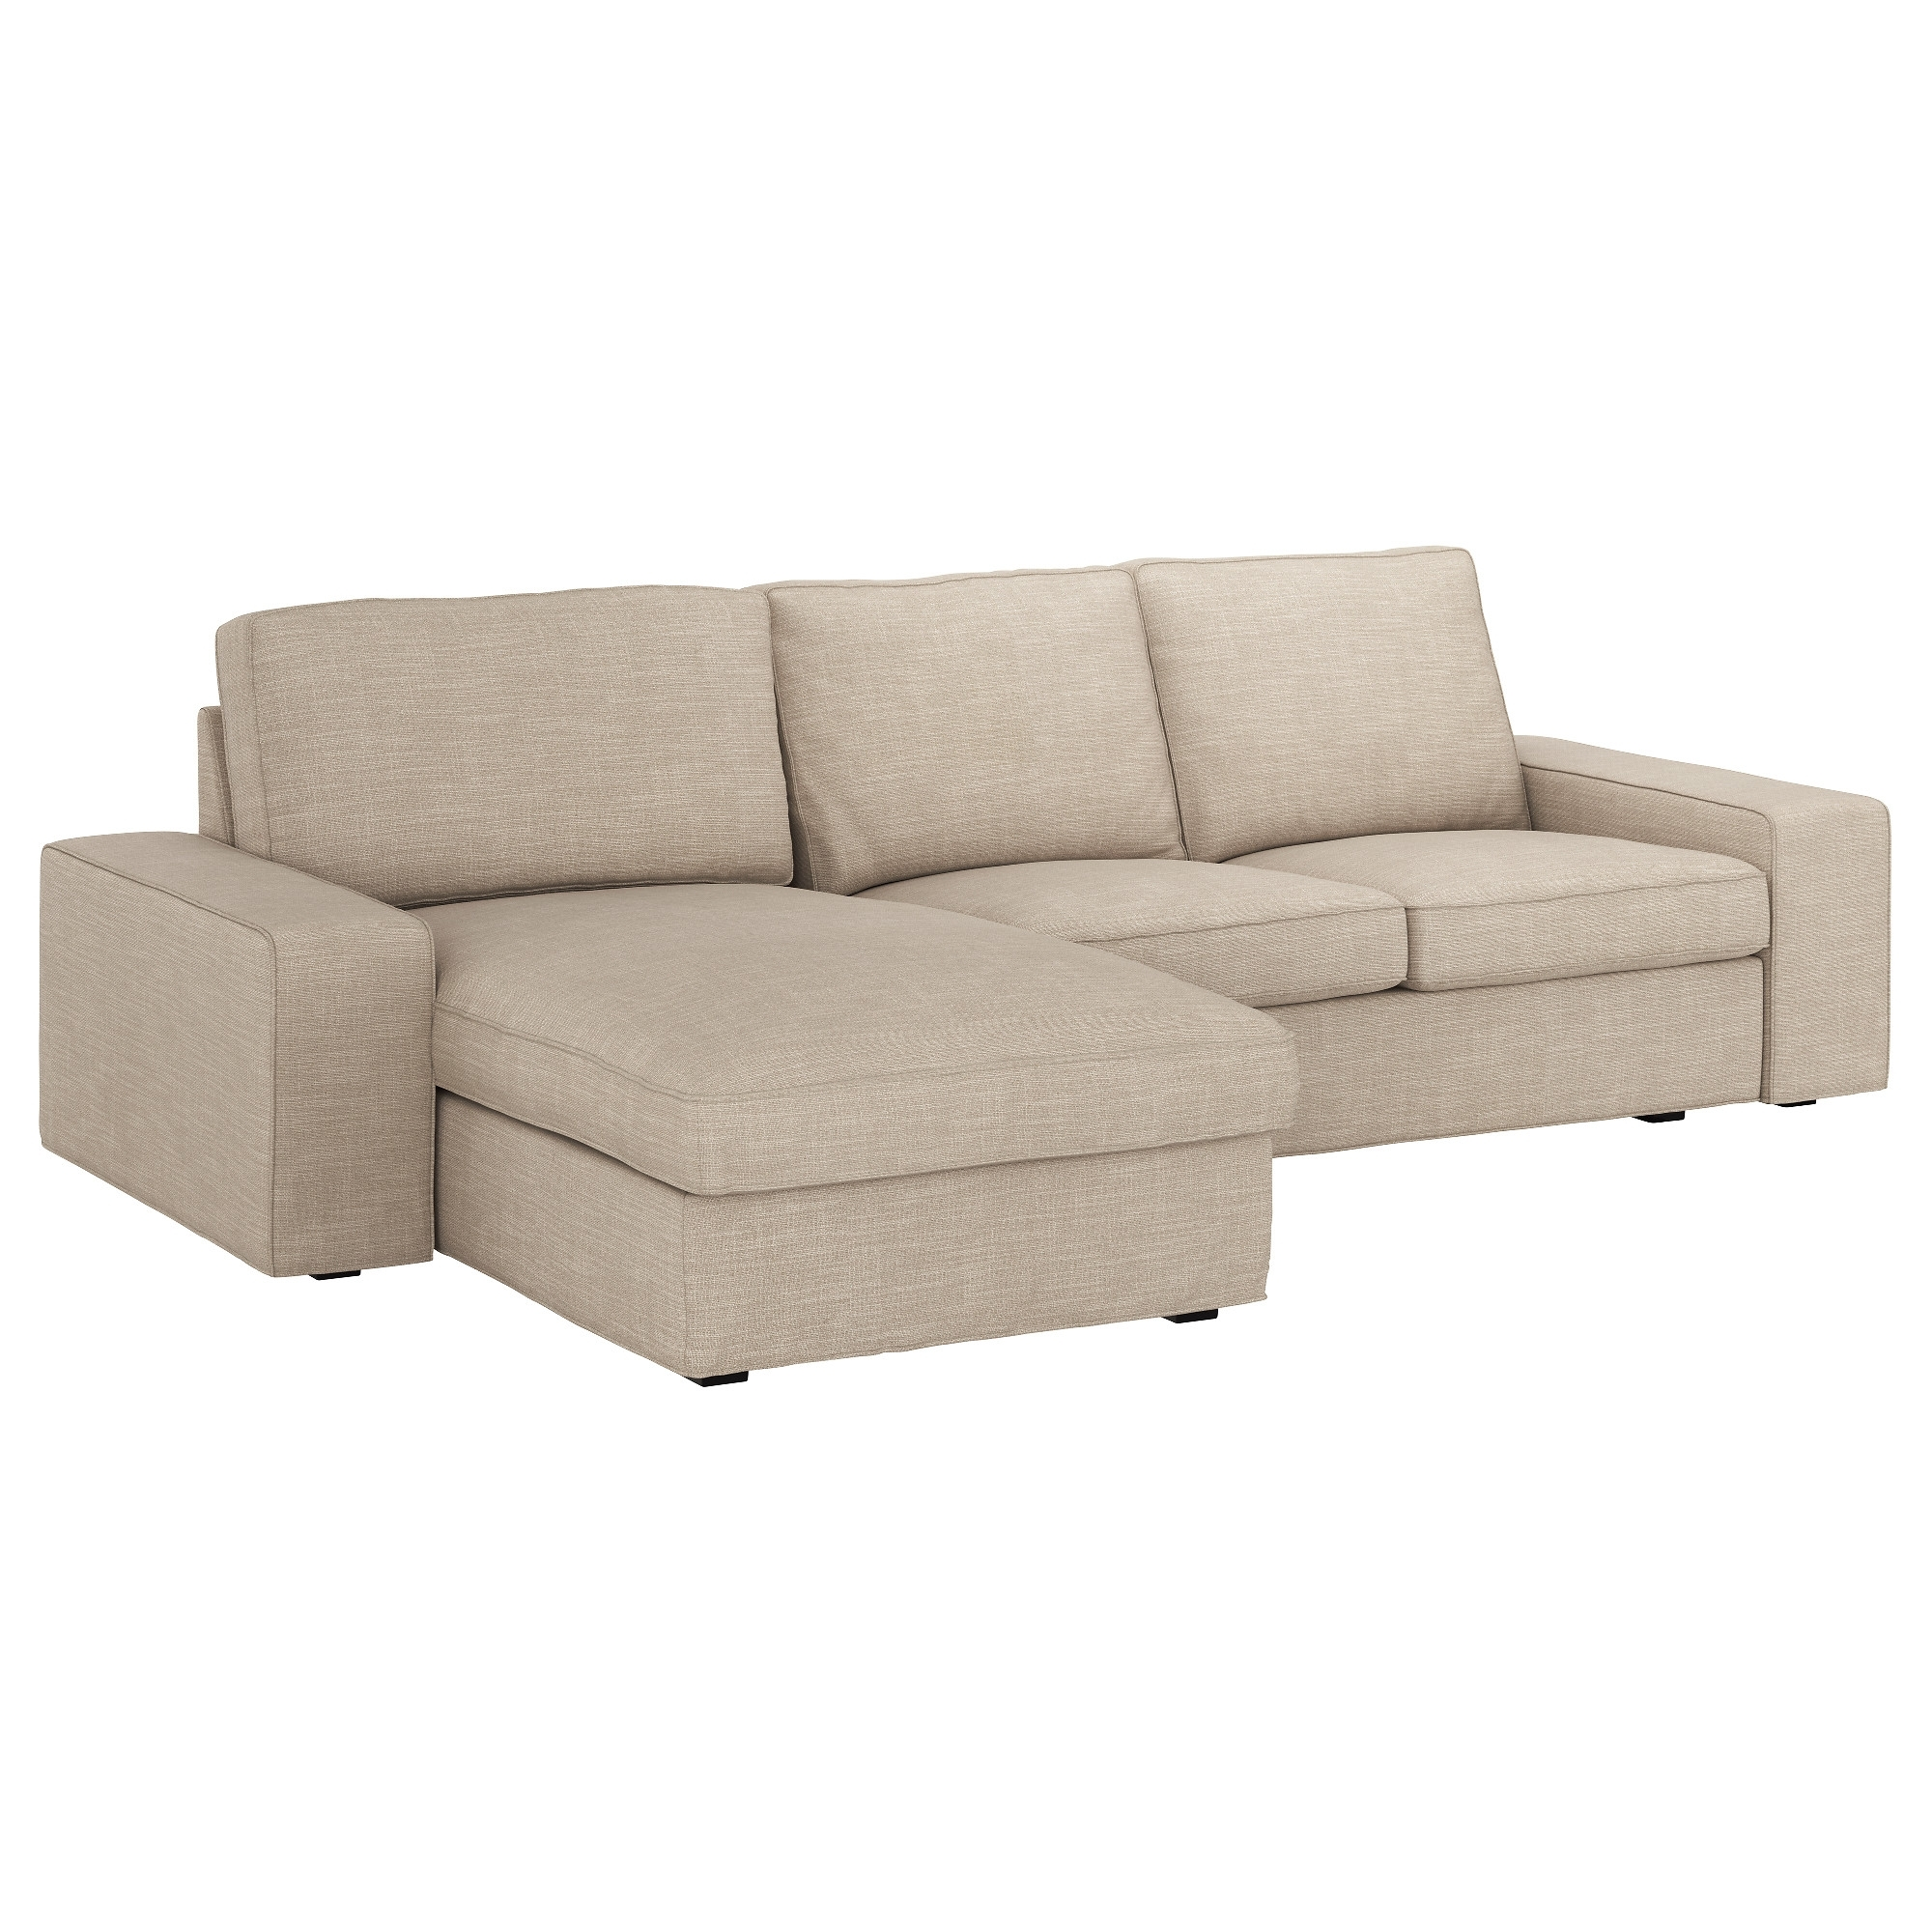 Ikea Chaise Couches Throughout 2017 Kivik Sofa – With Chaise/hillared Beige – Ikea (Gallery 3 of 15)